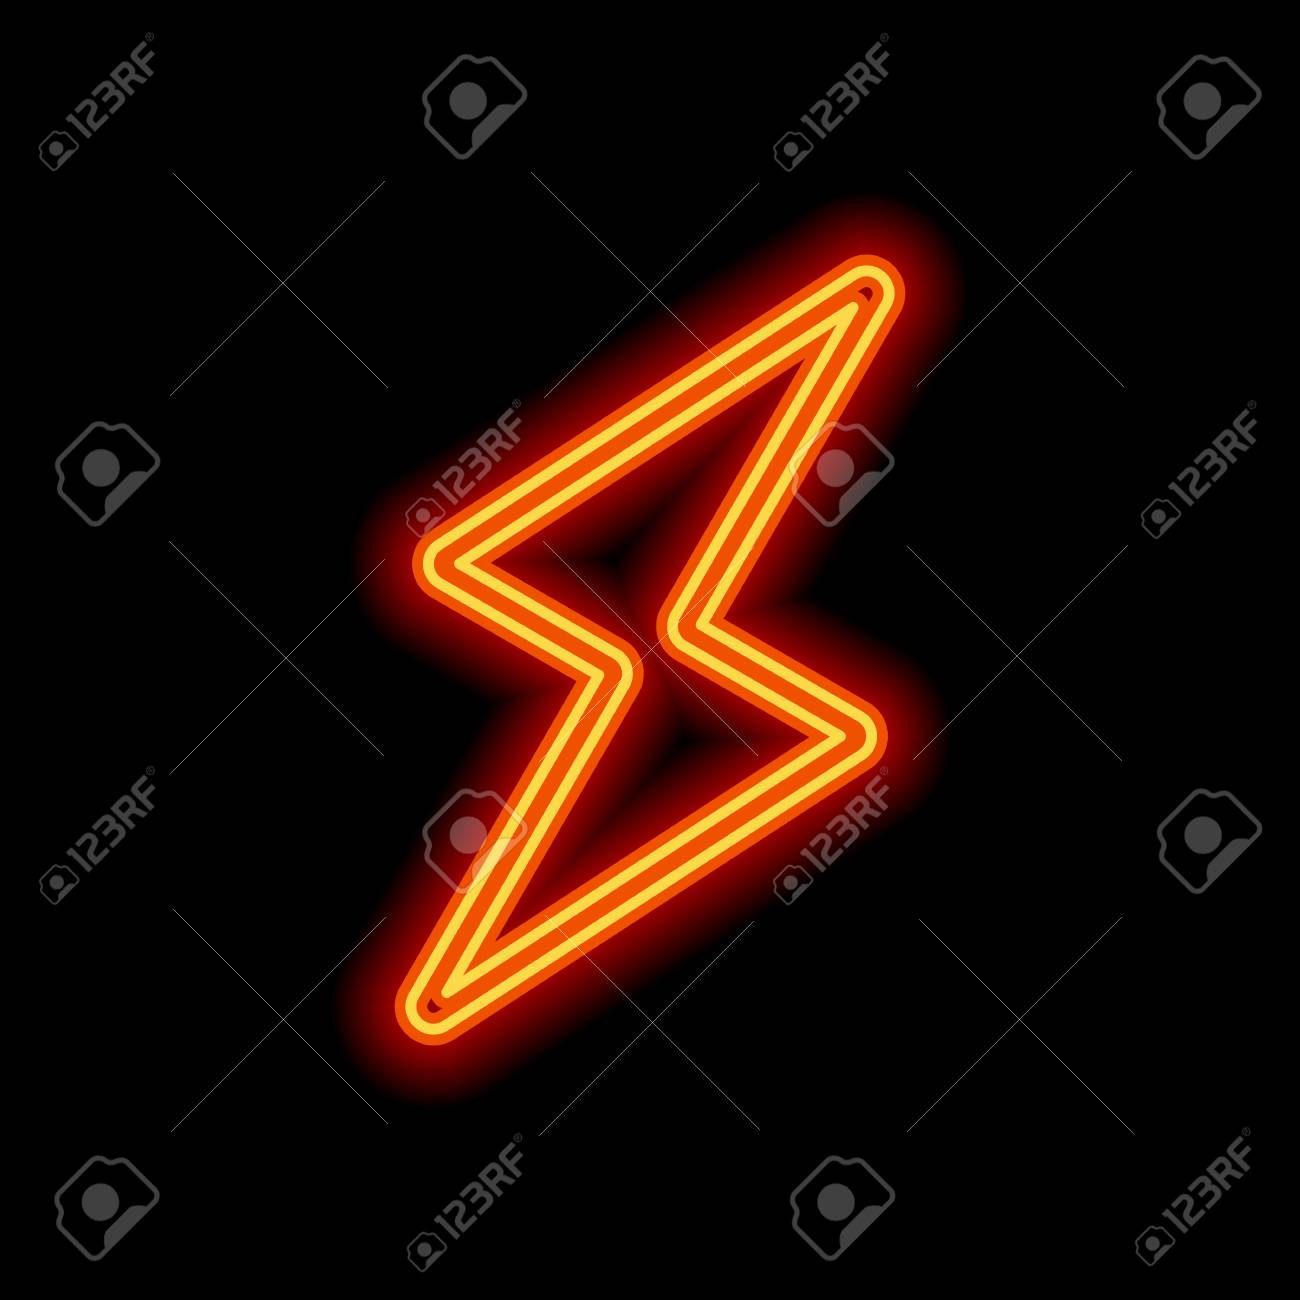 Flash Icon Orange Neon Style On Black Background Light Icon Royalty Free Cliparts Vectors And Stock Illustration Image 111837670